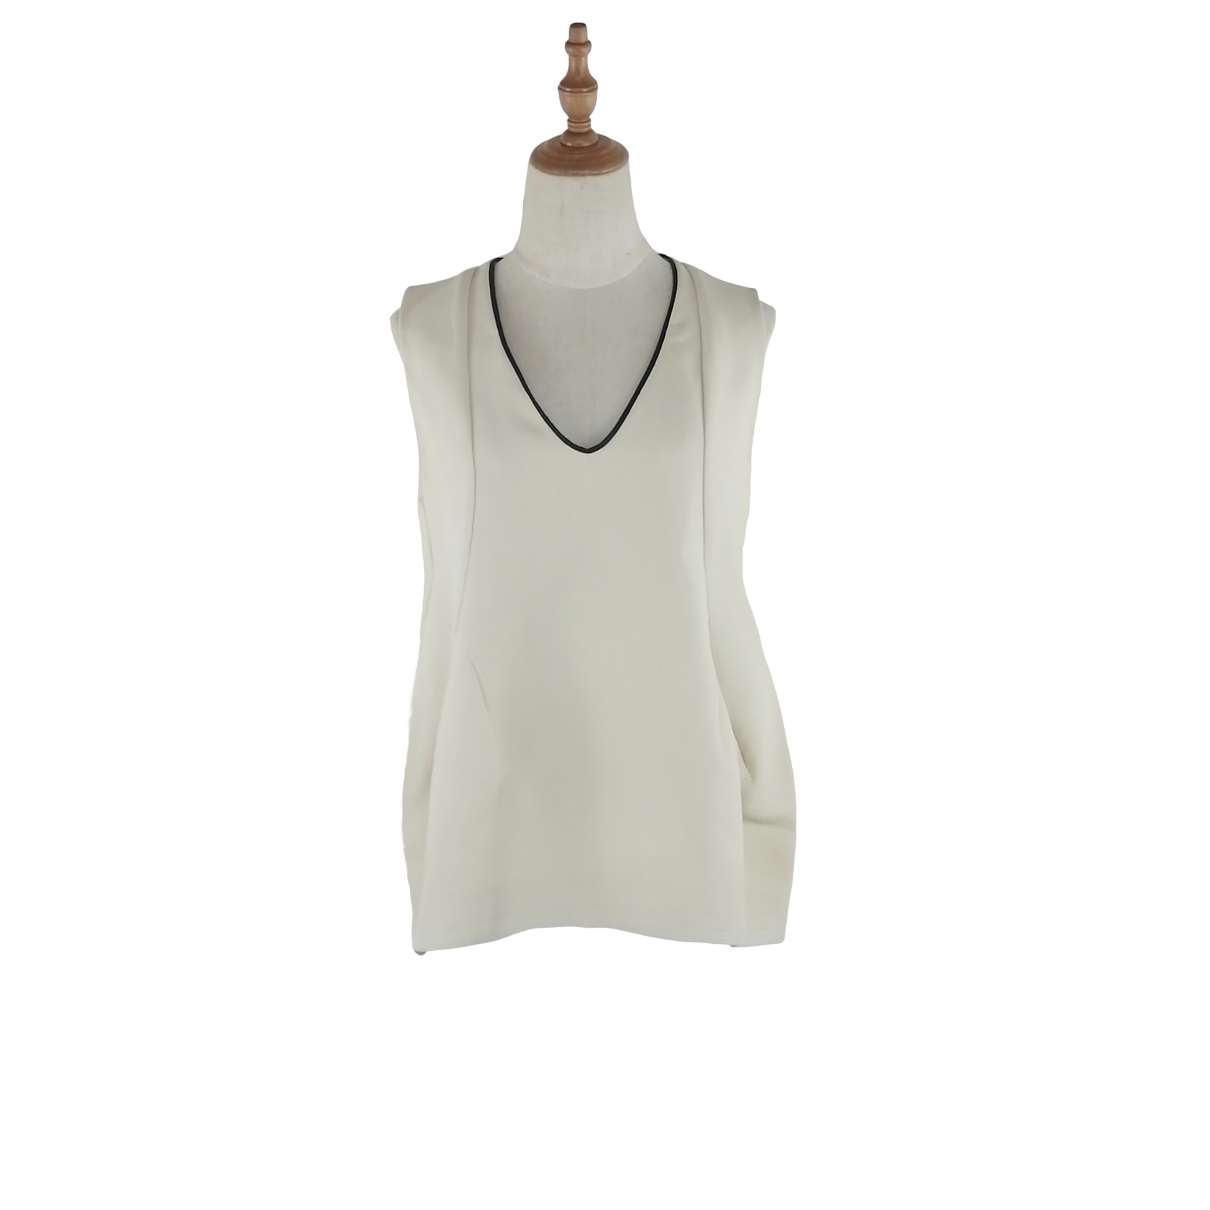 Marni \N White  top for Women 40 IT